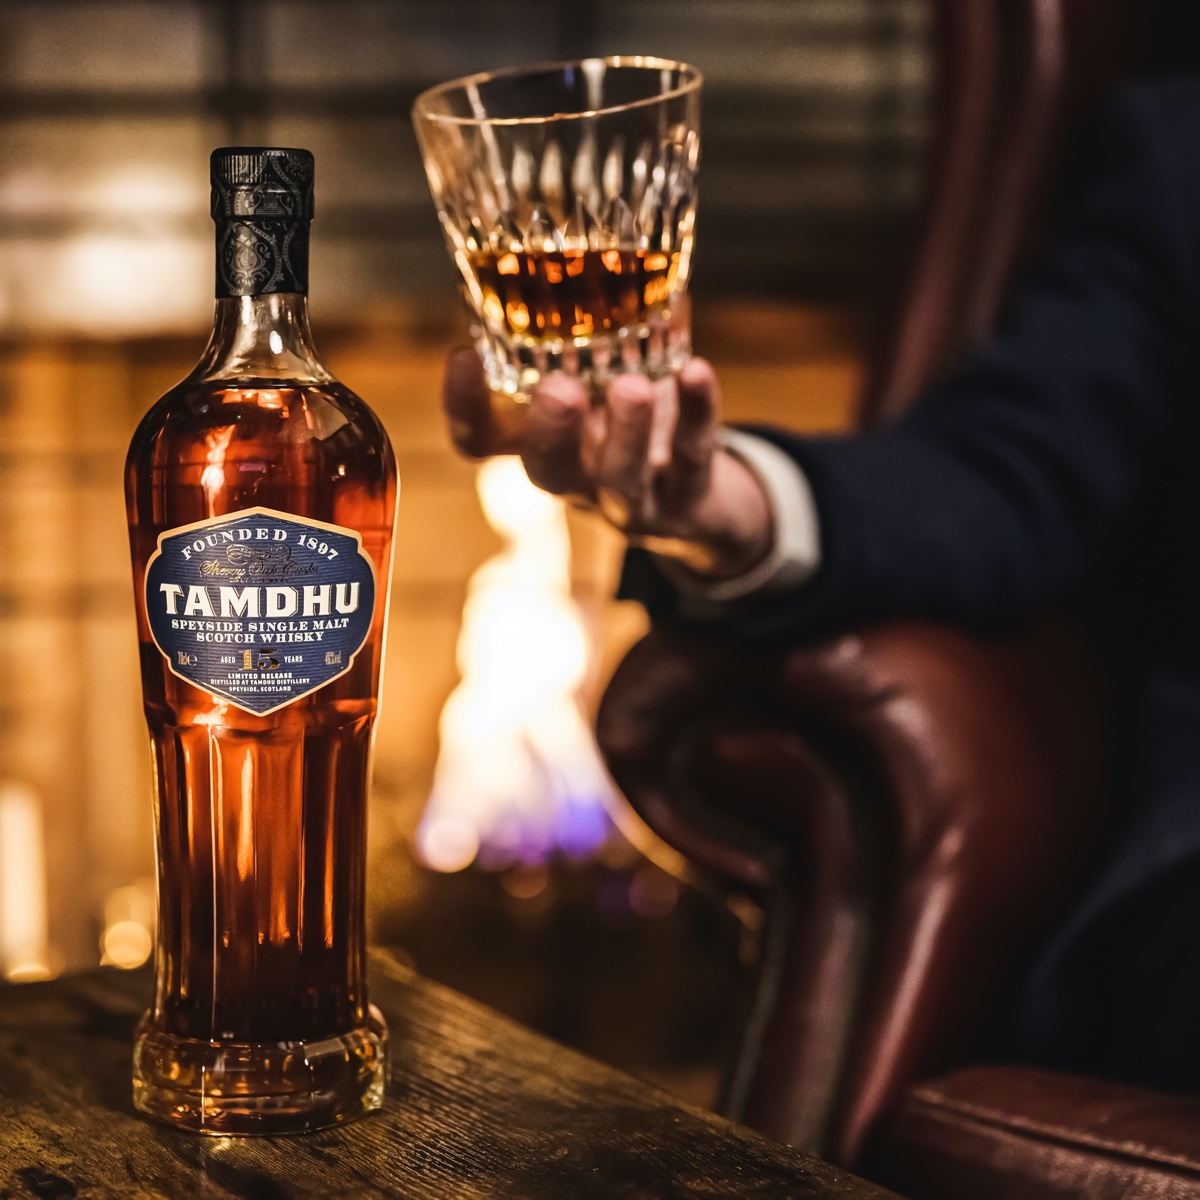 From all at Tamdhu,  We'd like to wish you and yours only the best this Christmas. 🎄 🥃 https://t.co/uief6xAmkO